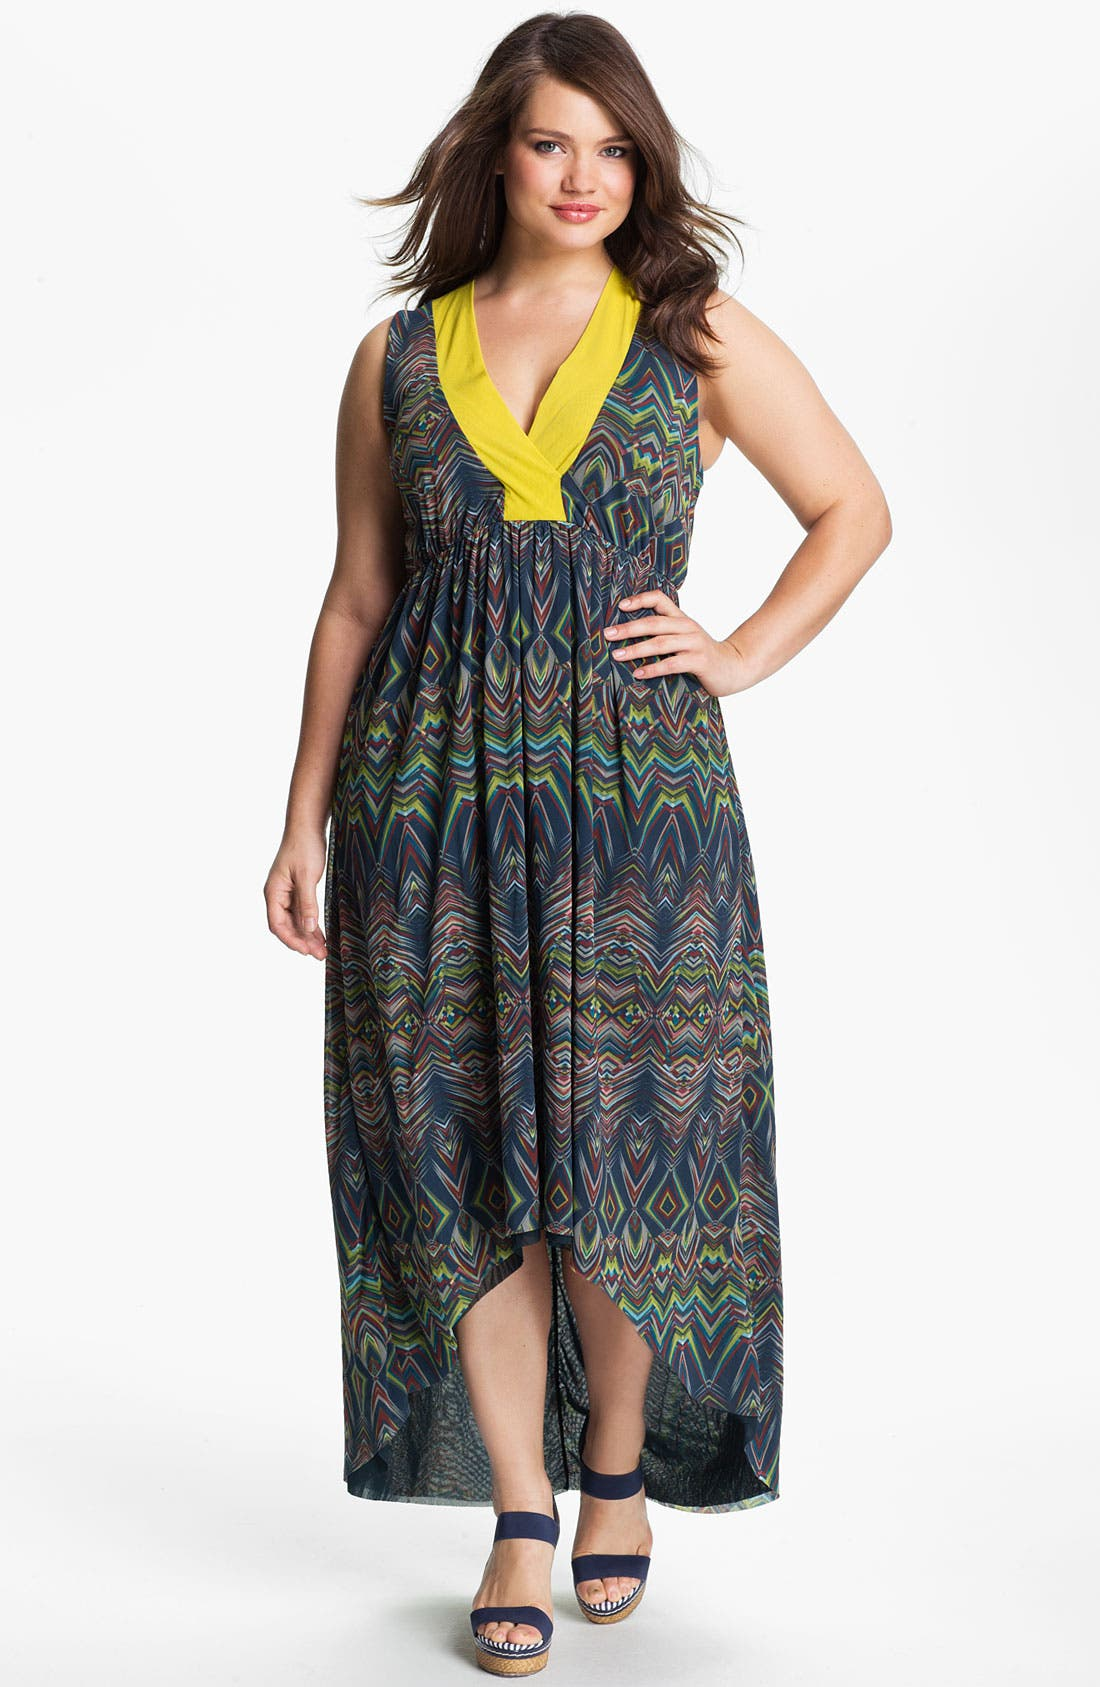 Alternate Image 1 Selected - Sweet Pea by Stacy Frati Sleeveless Asymmetrical Dress (Plus)